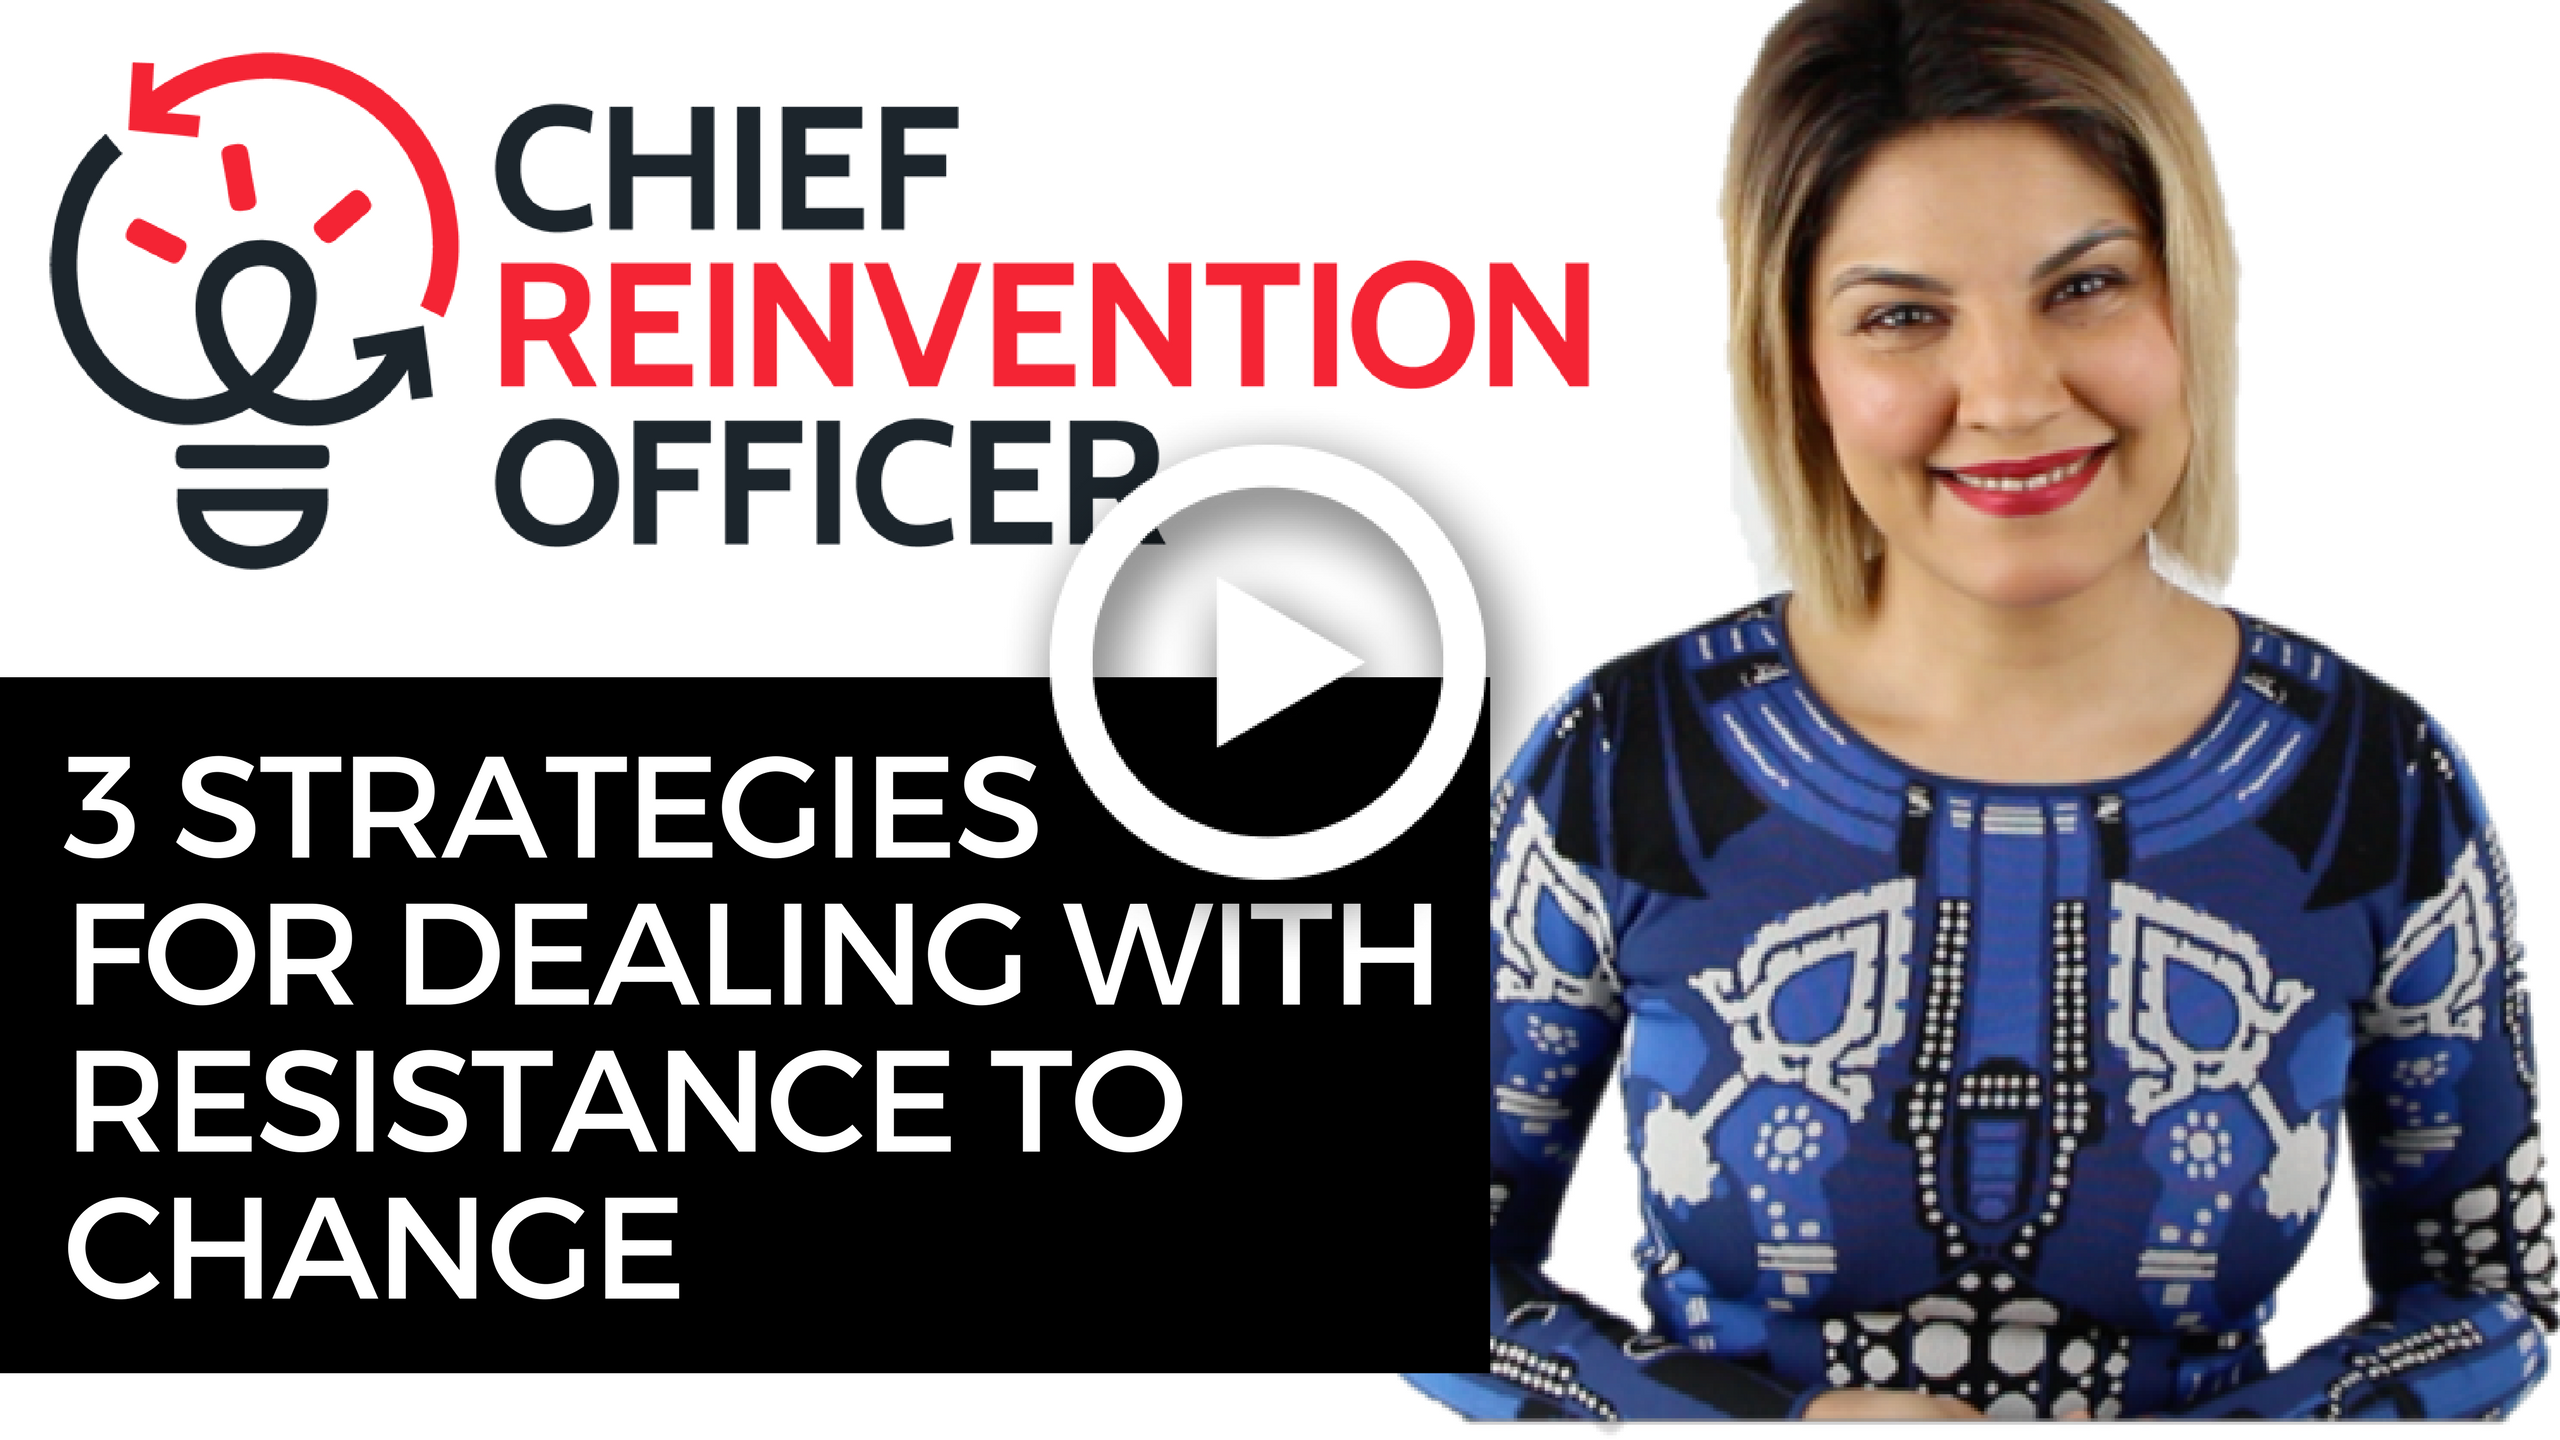 3 strategies for dealing with resistance to change